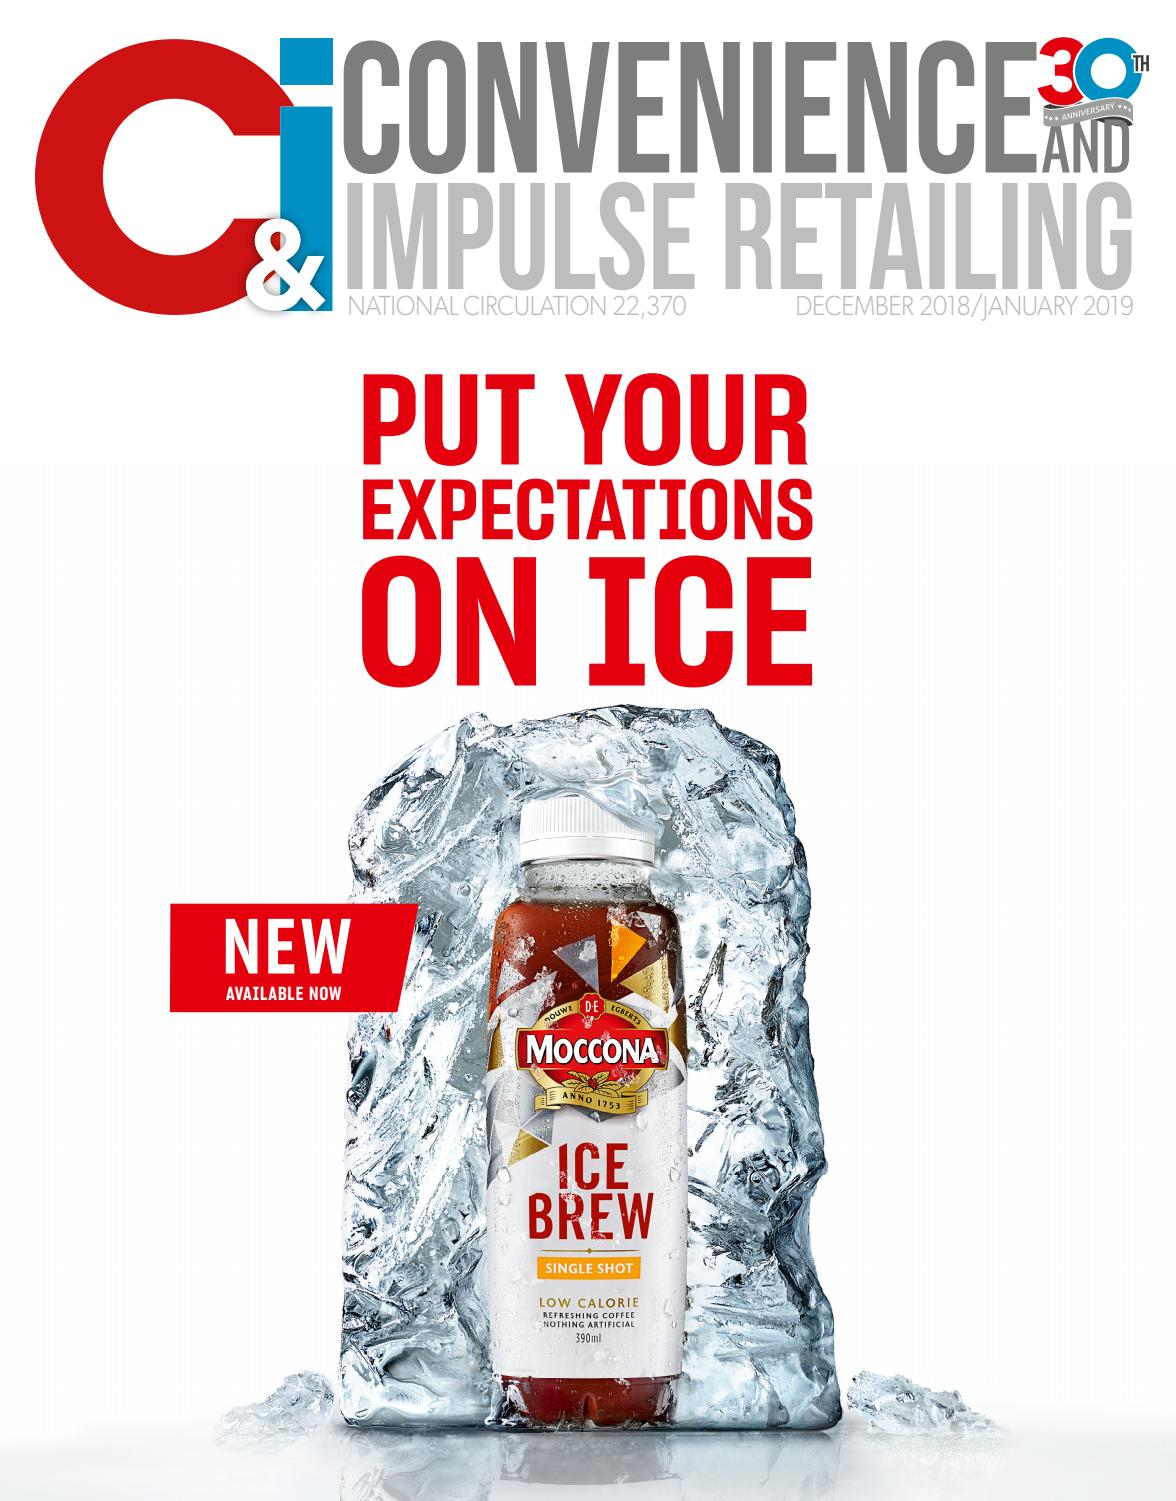 C&I Retailing Magazine December 2018 - January 2019 by The